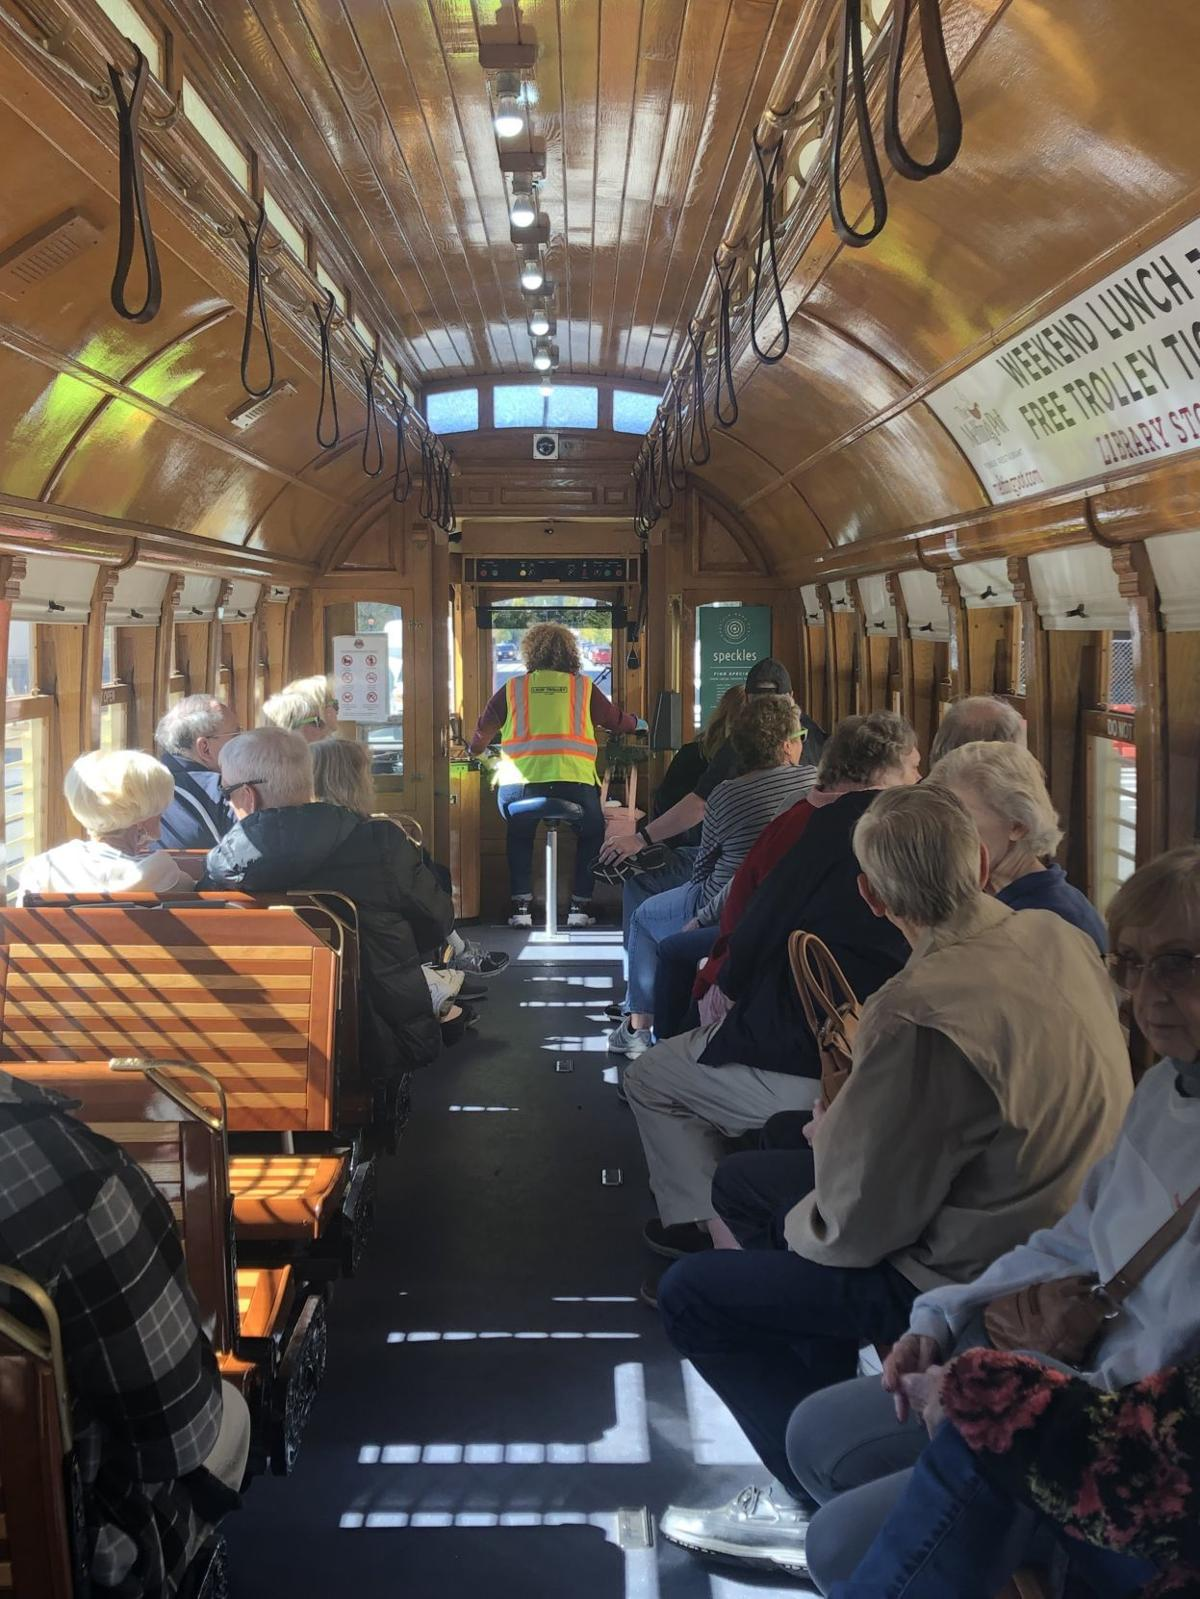 The Loop Trolley begins reduced service hours